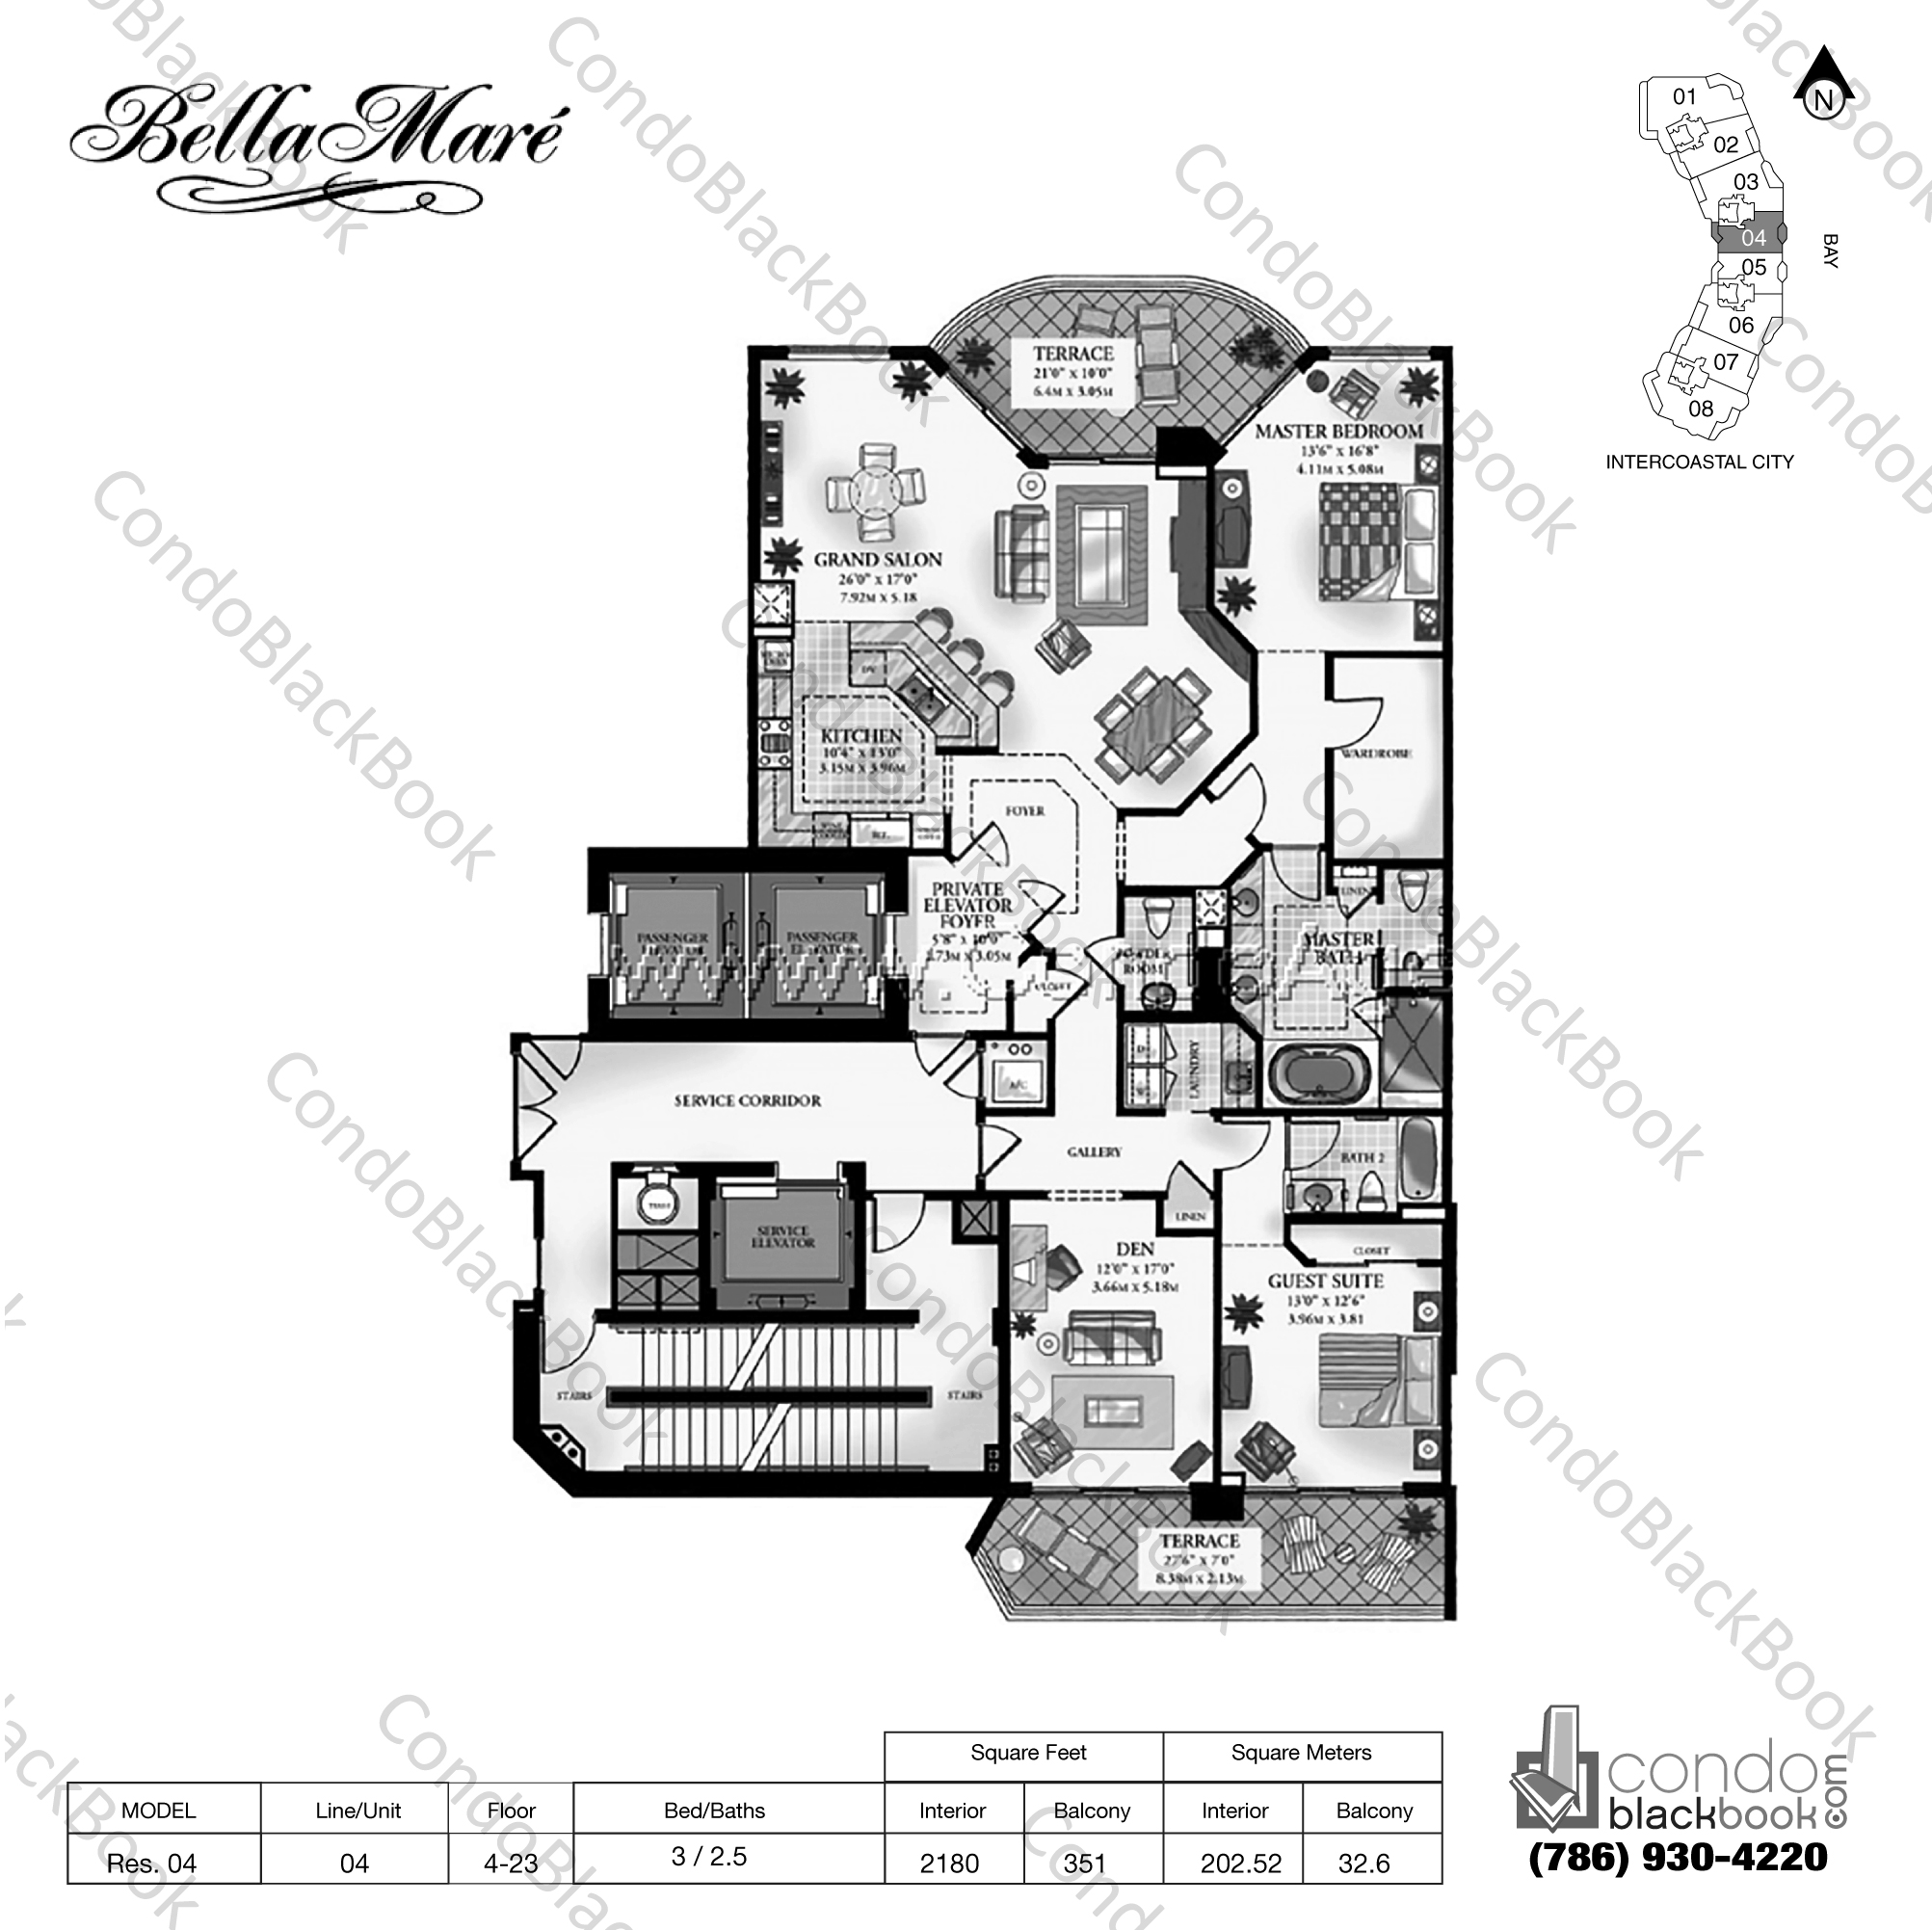 Floor plan for Bella Mare Aventura, model Residence 04, line 04, 3 / 2.5 bedrooms, 2180 sq ft